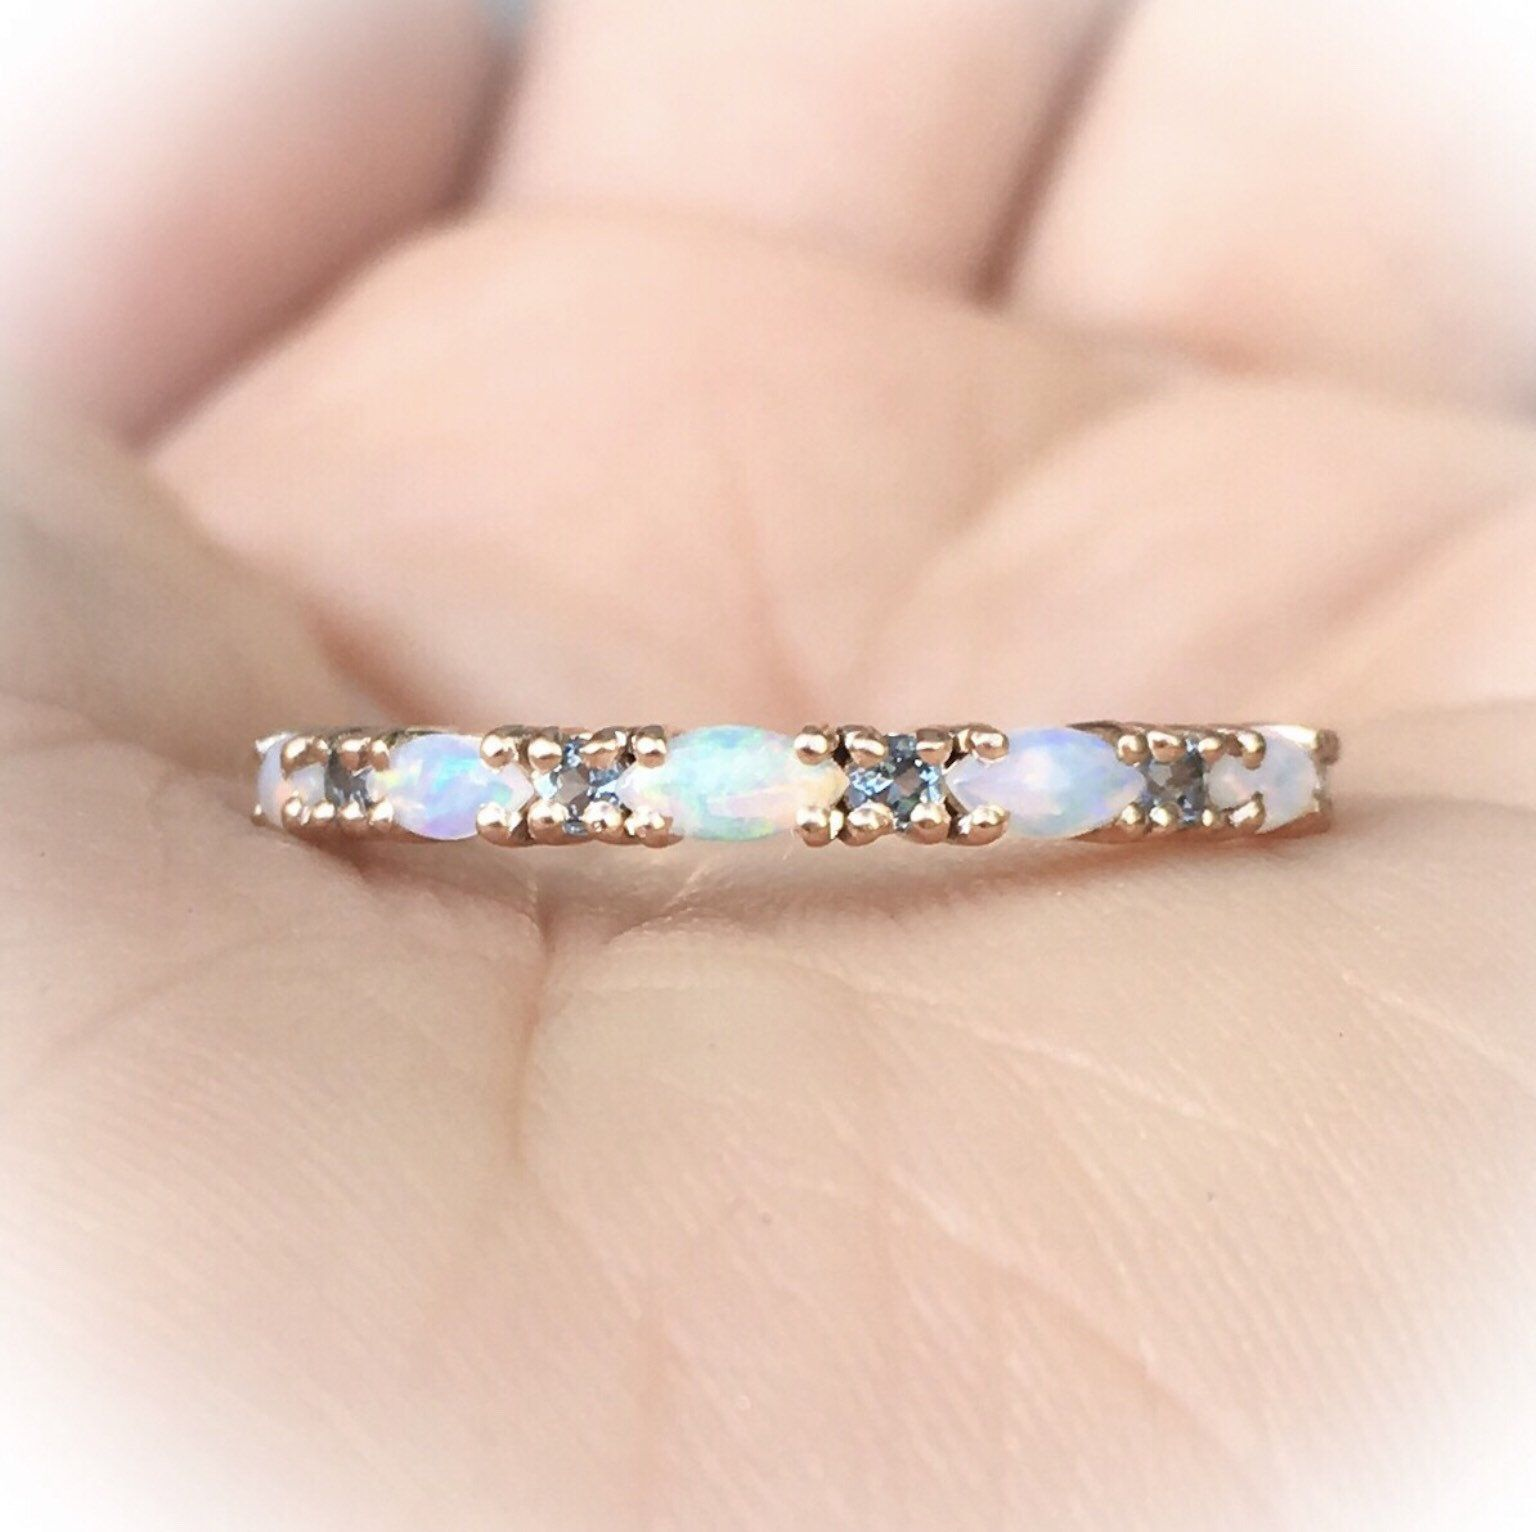 Opal,White Opal Ring,White fire opal,diamond eternity band,CZ ring,Stack rings,wedding band,birthday ring,Halo Ring,3 ring set,opal stack